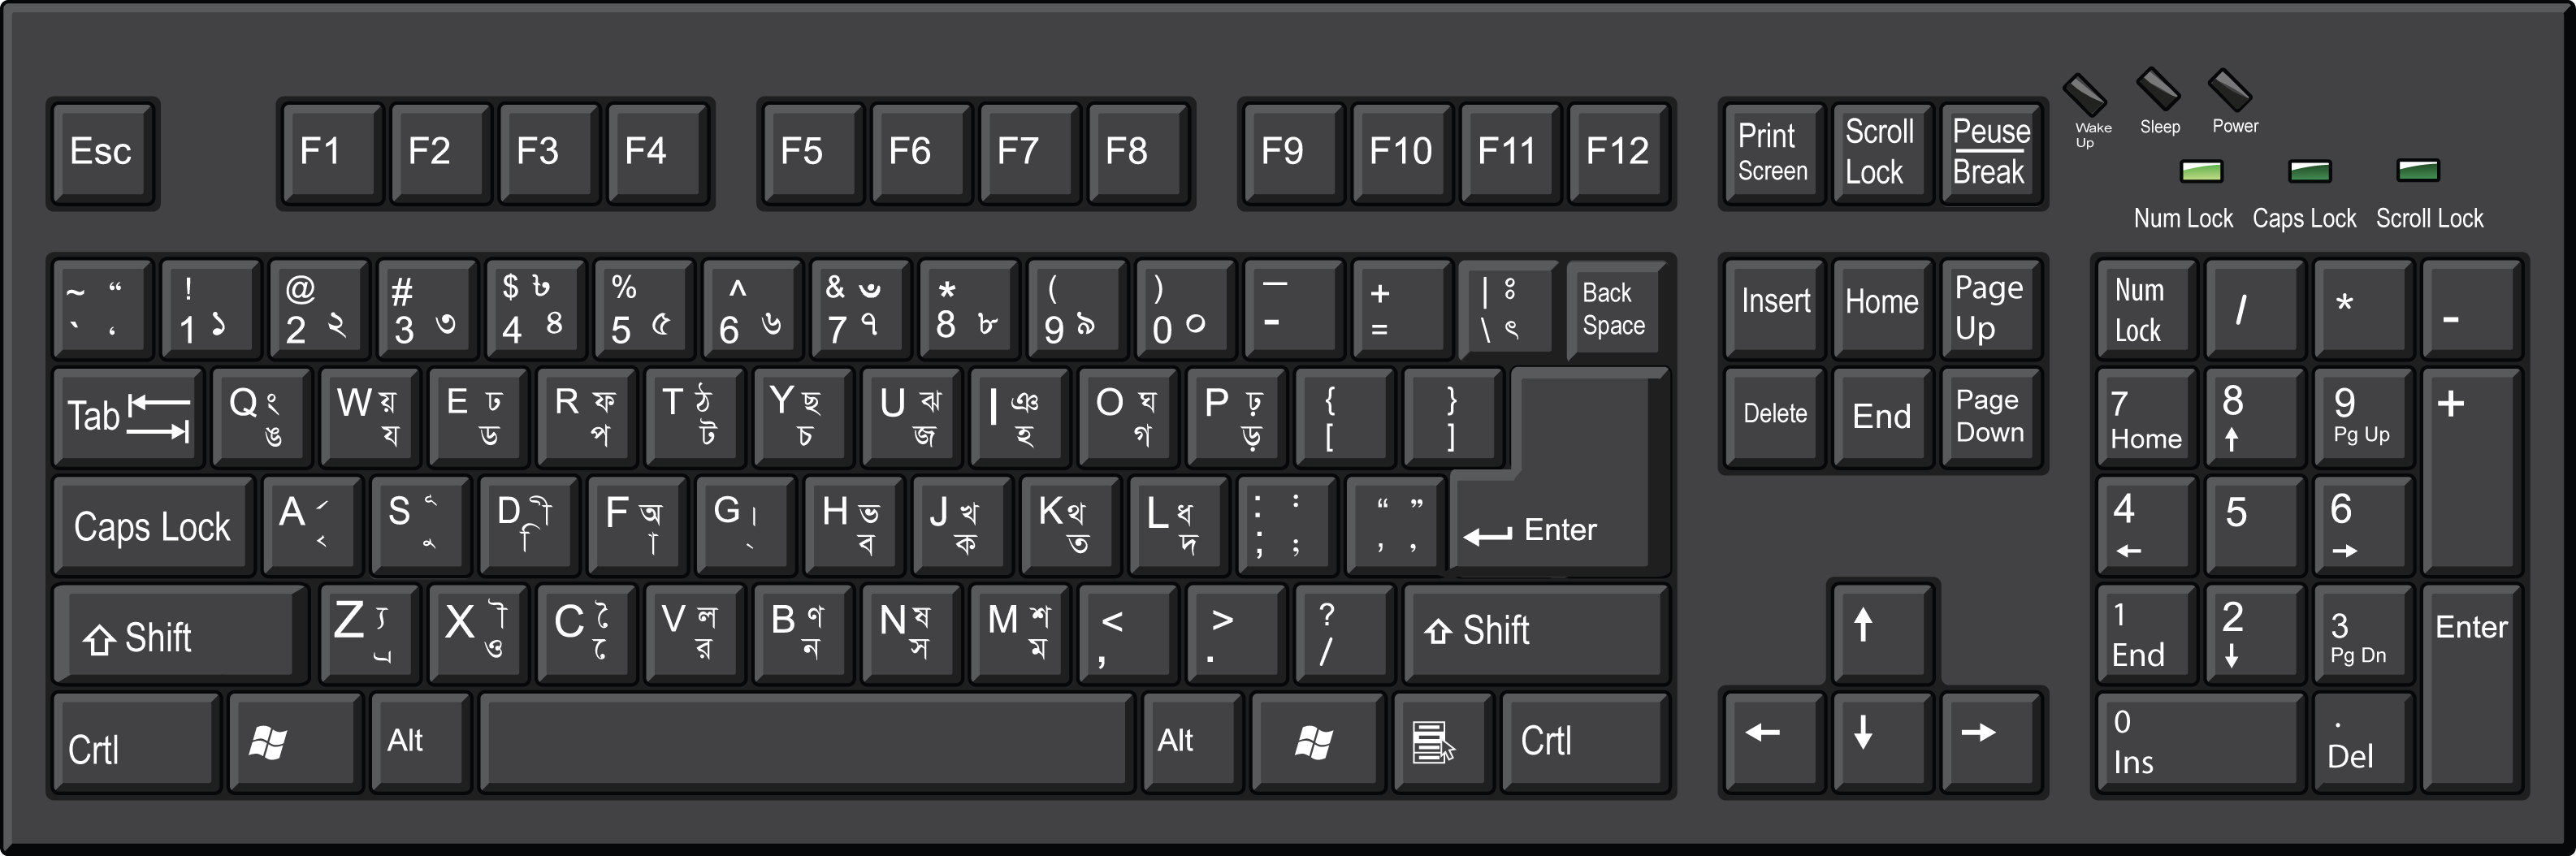 keypad png hd transparent keypad hd png images pluspng accounting clip art free accounting clip art free